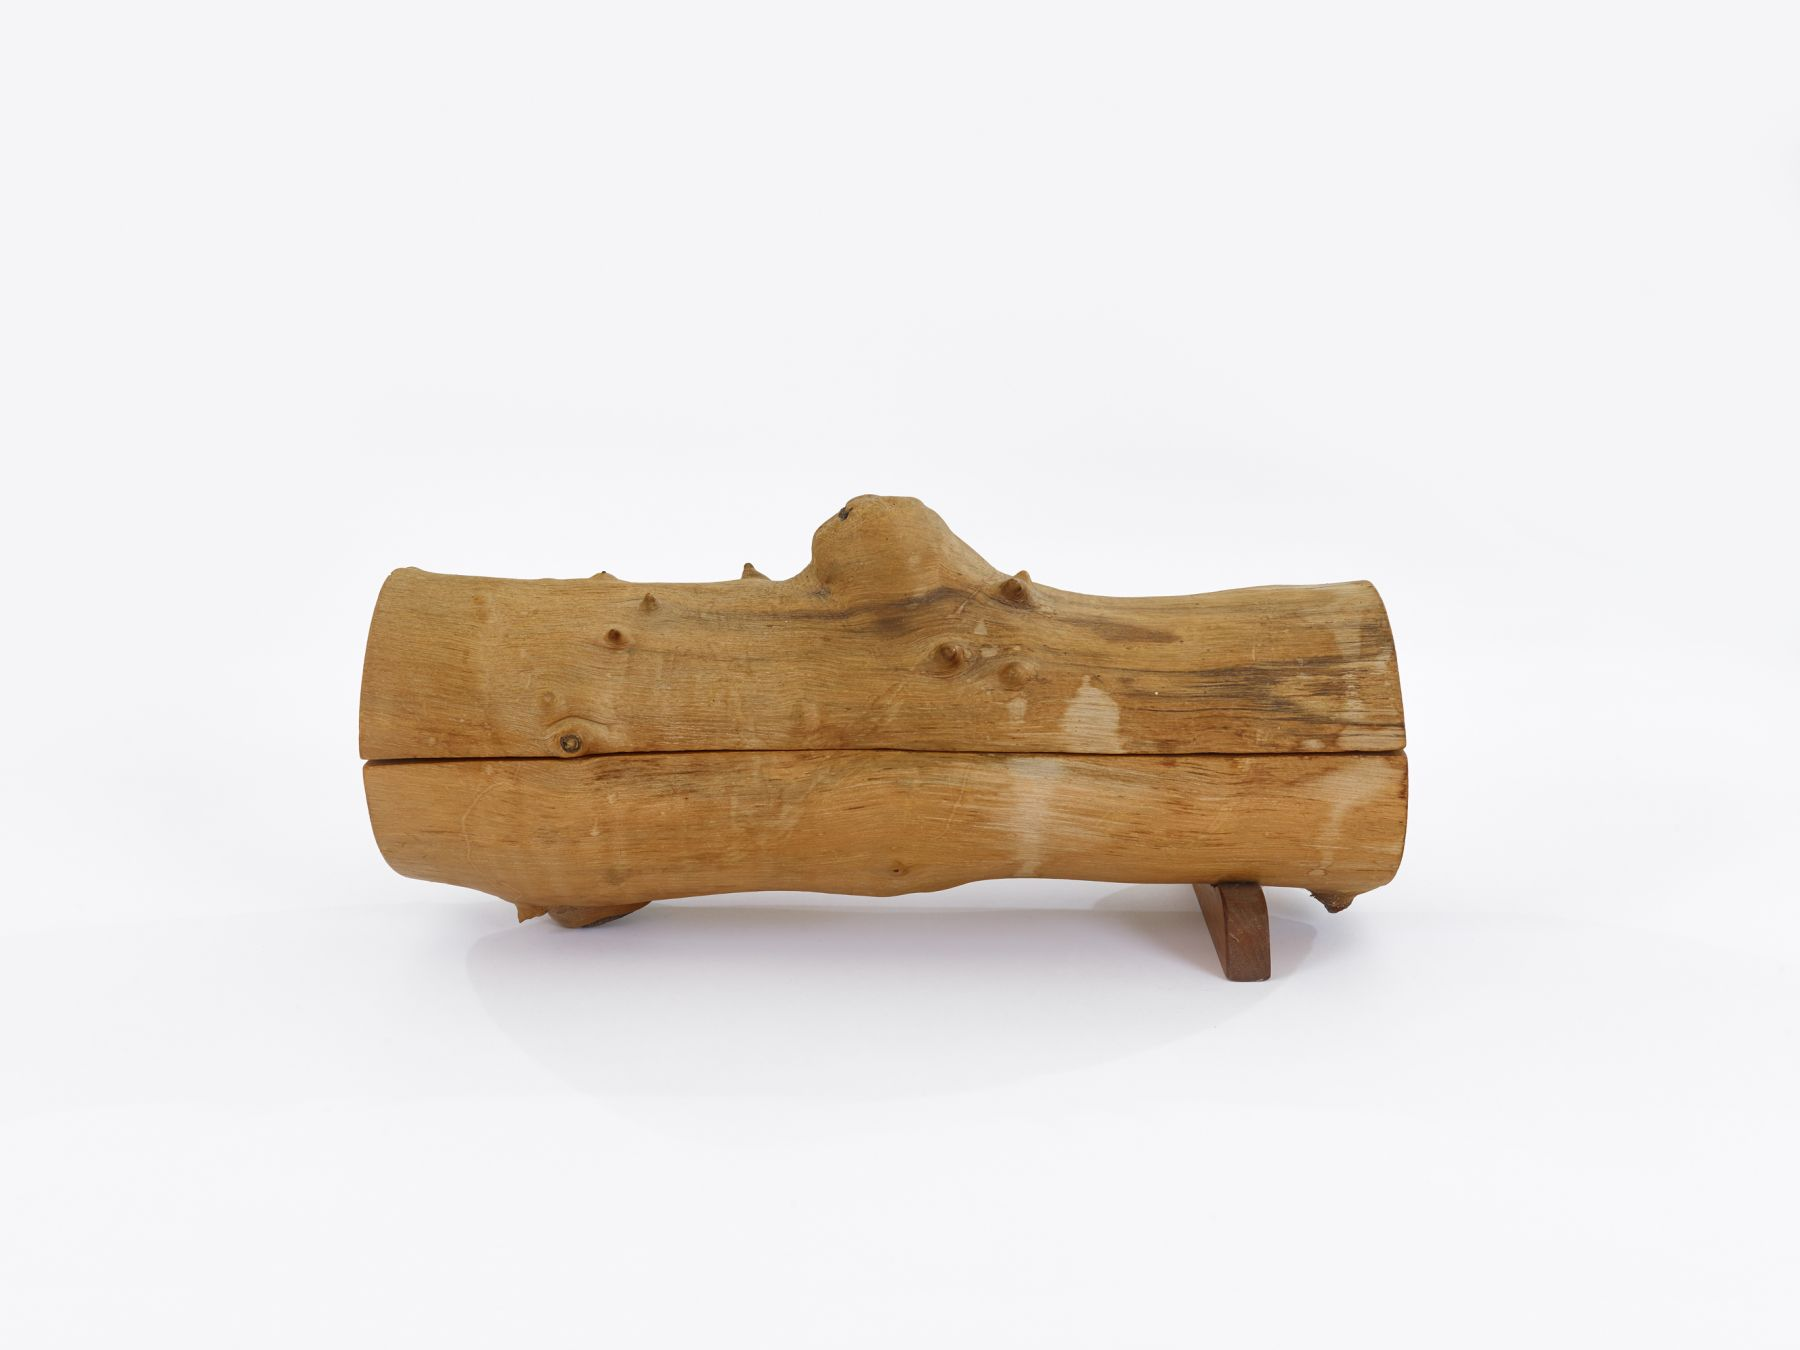 H.C. Westermann Walnut Log, 1969